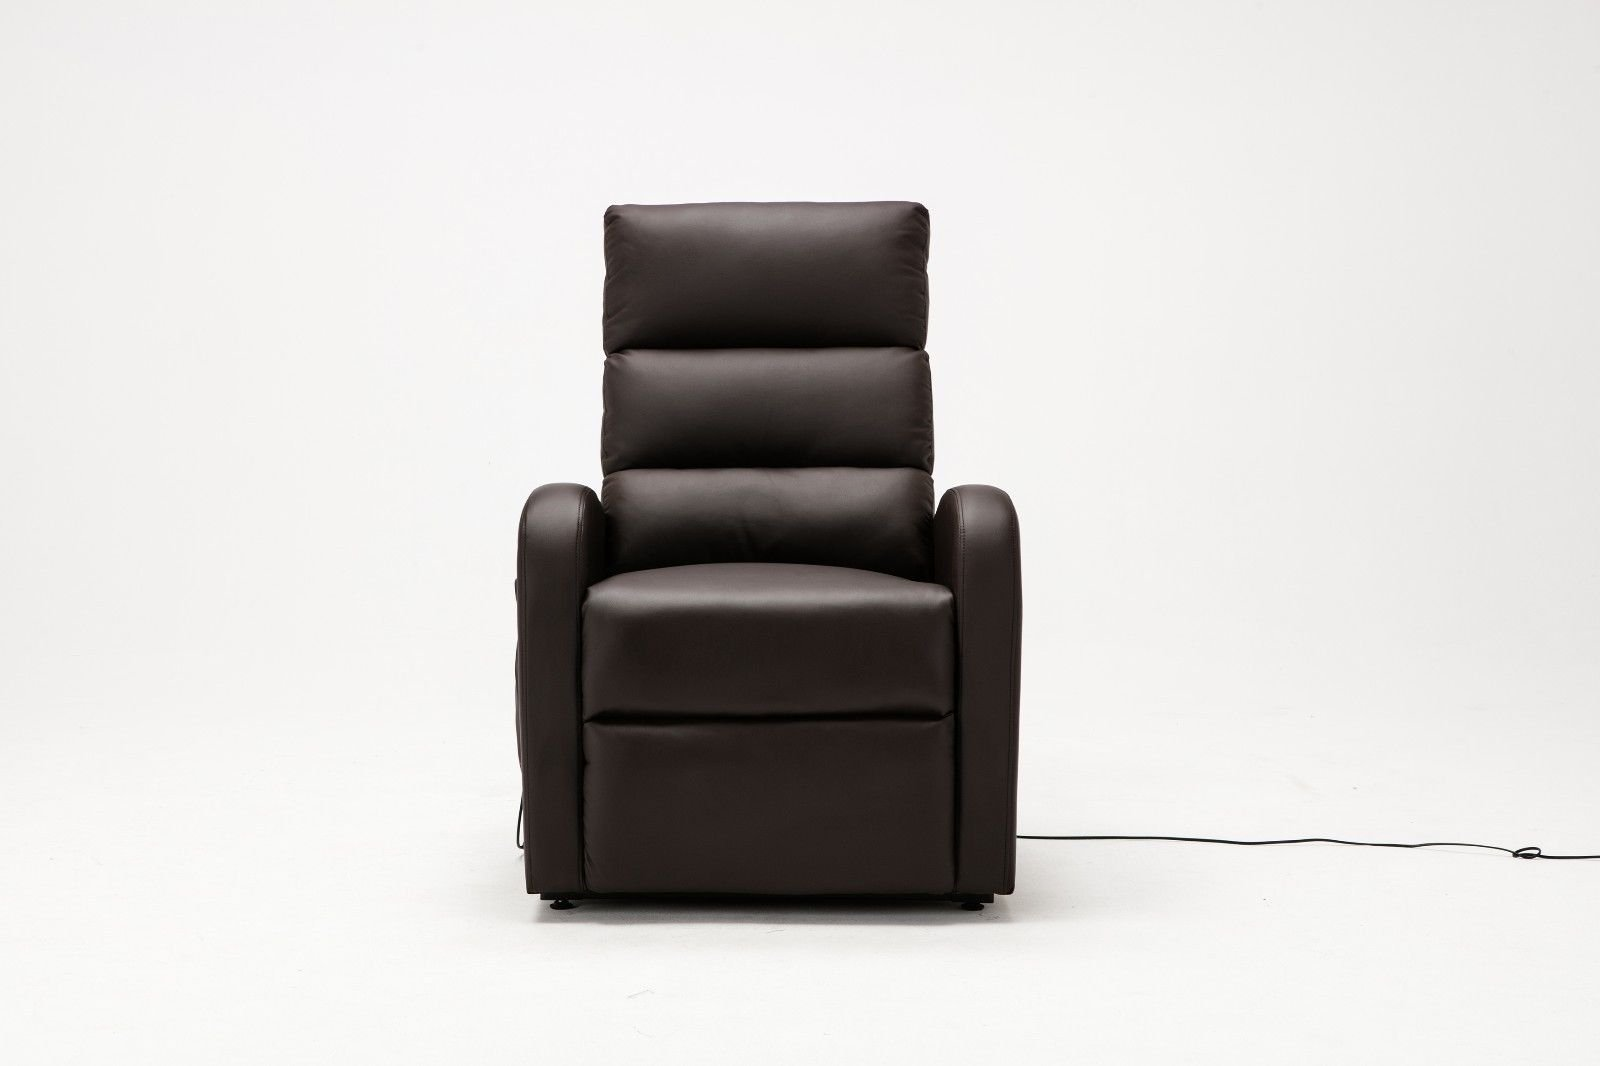 Outstanding Classic Plush Bonded Leather Power Lift Recliner Living Room Chair Brown Caraccident5 Cool Chair Designs And Ideas Caraccident5Info